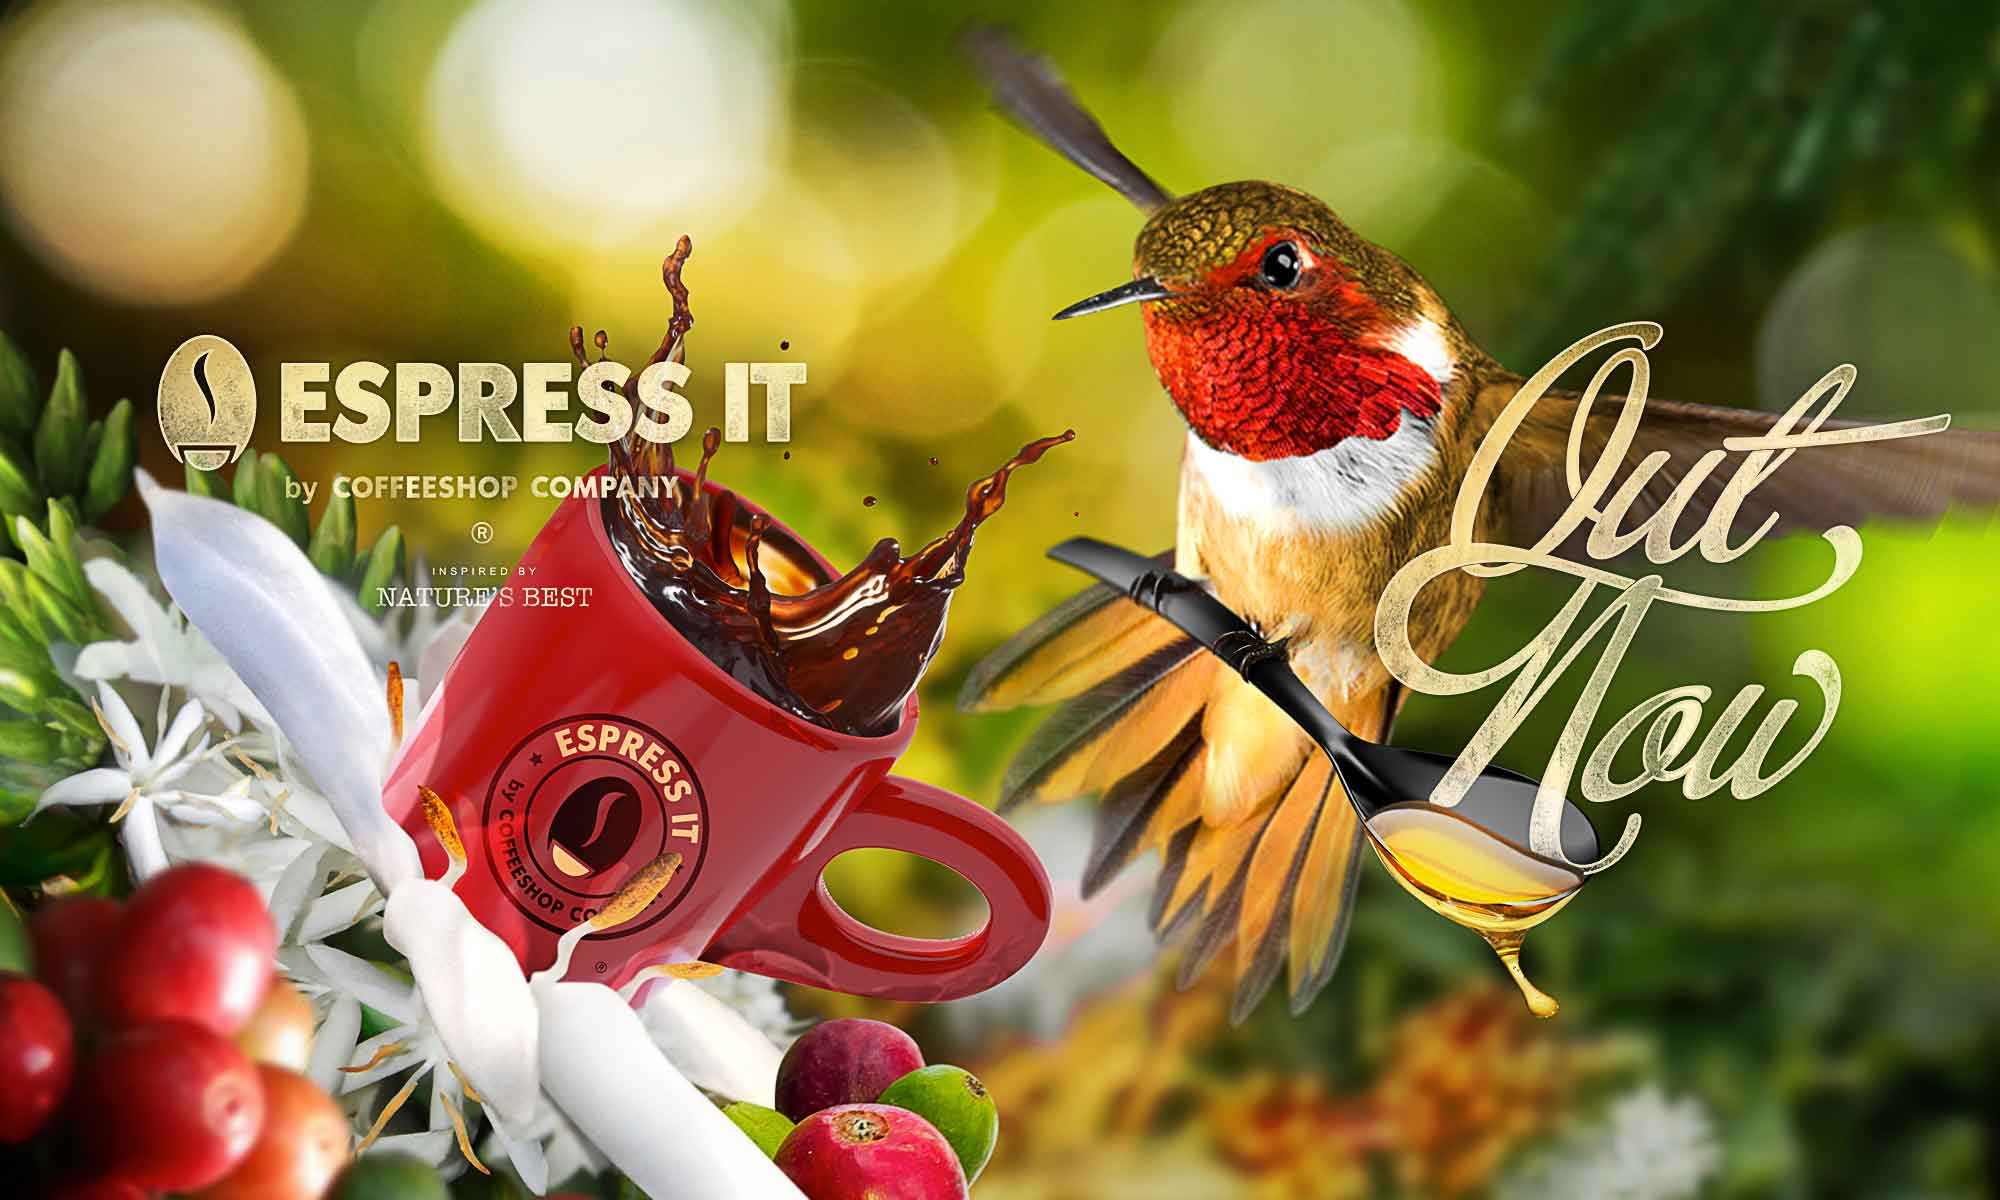 Espress It by Coffeeshop Company